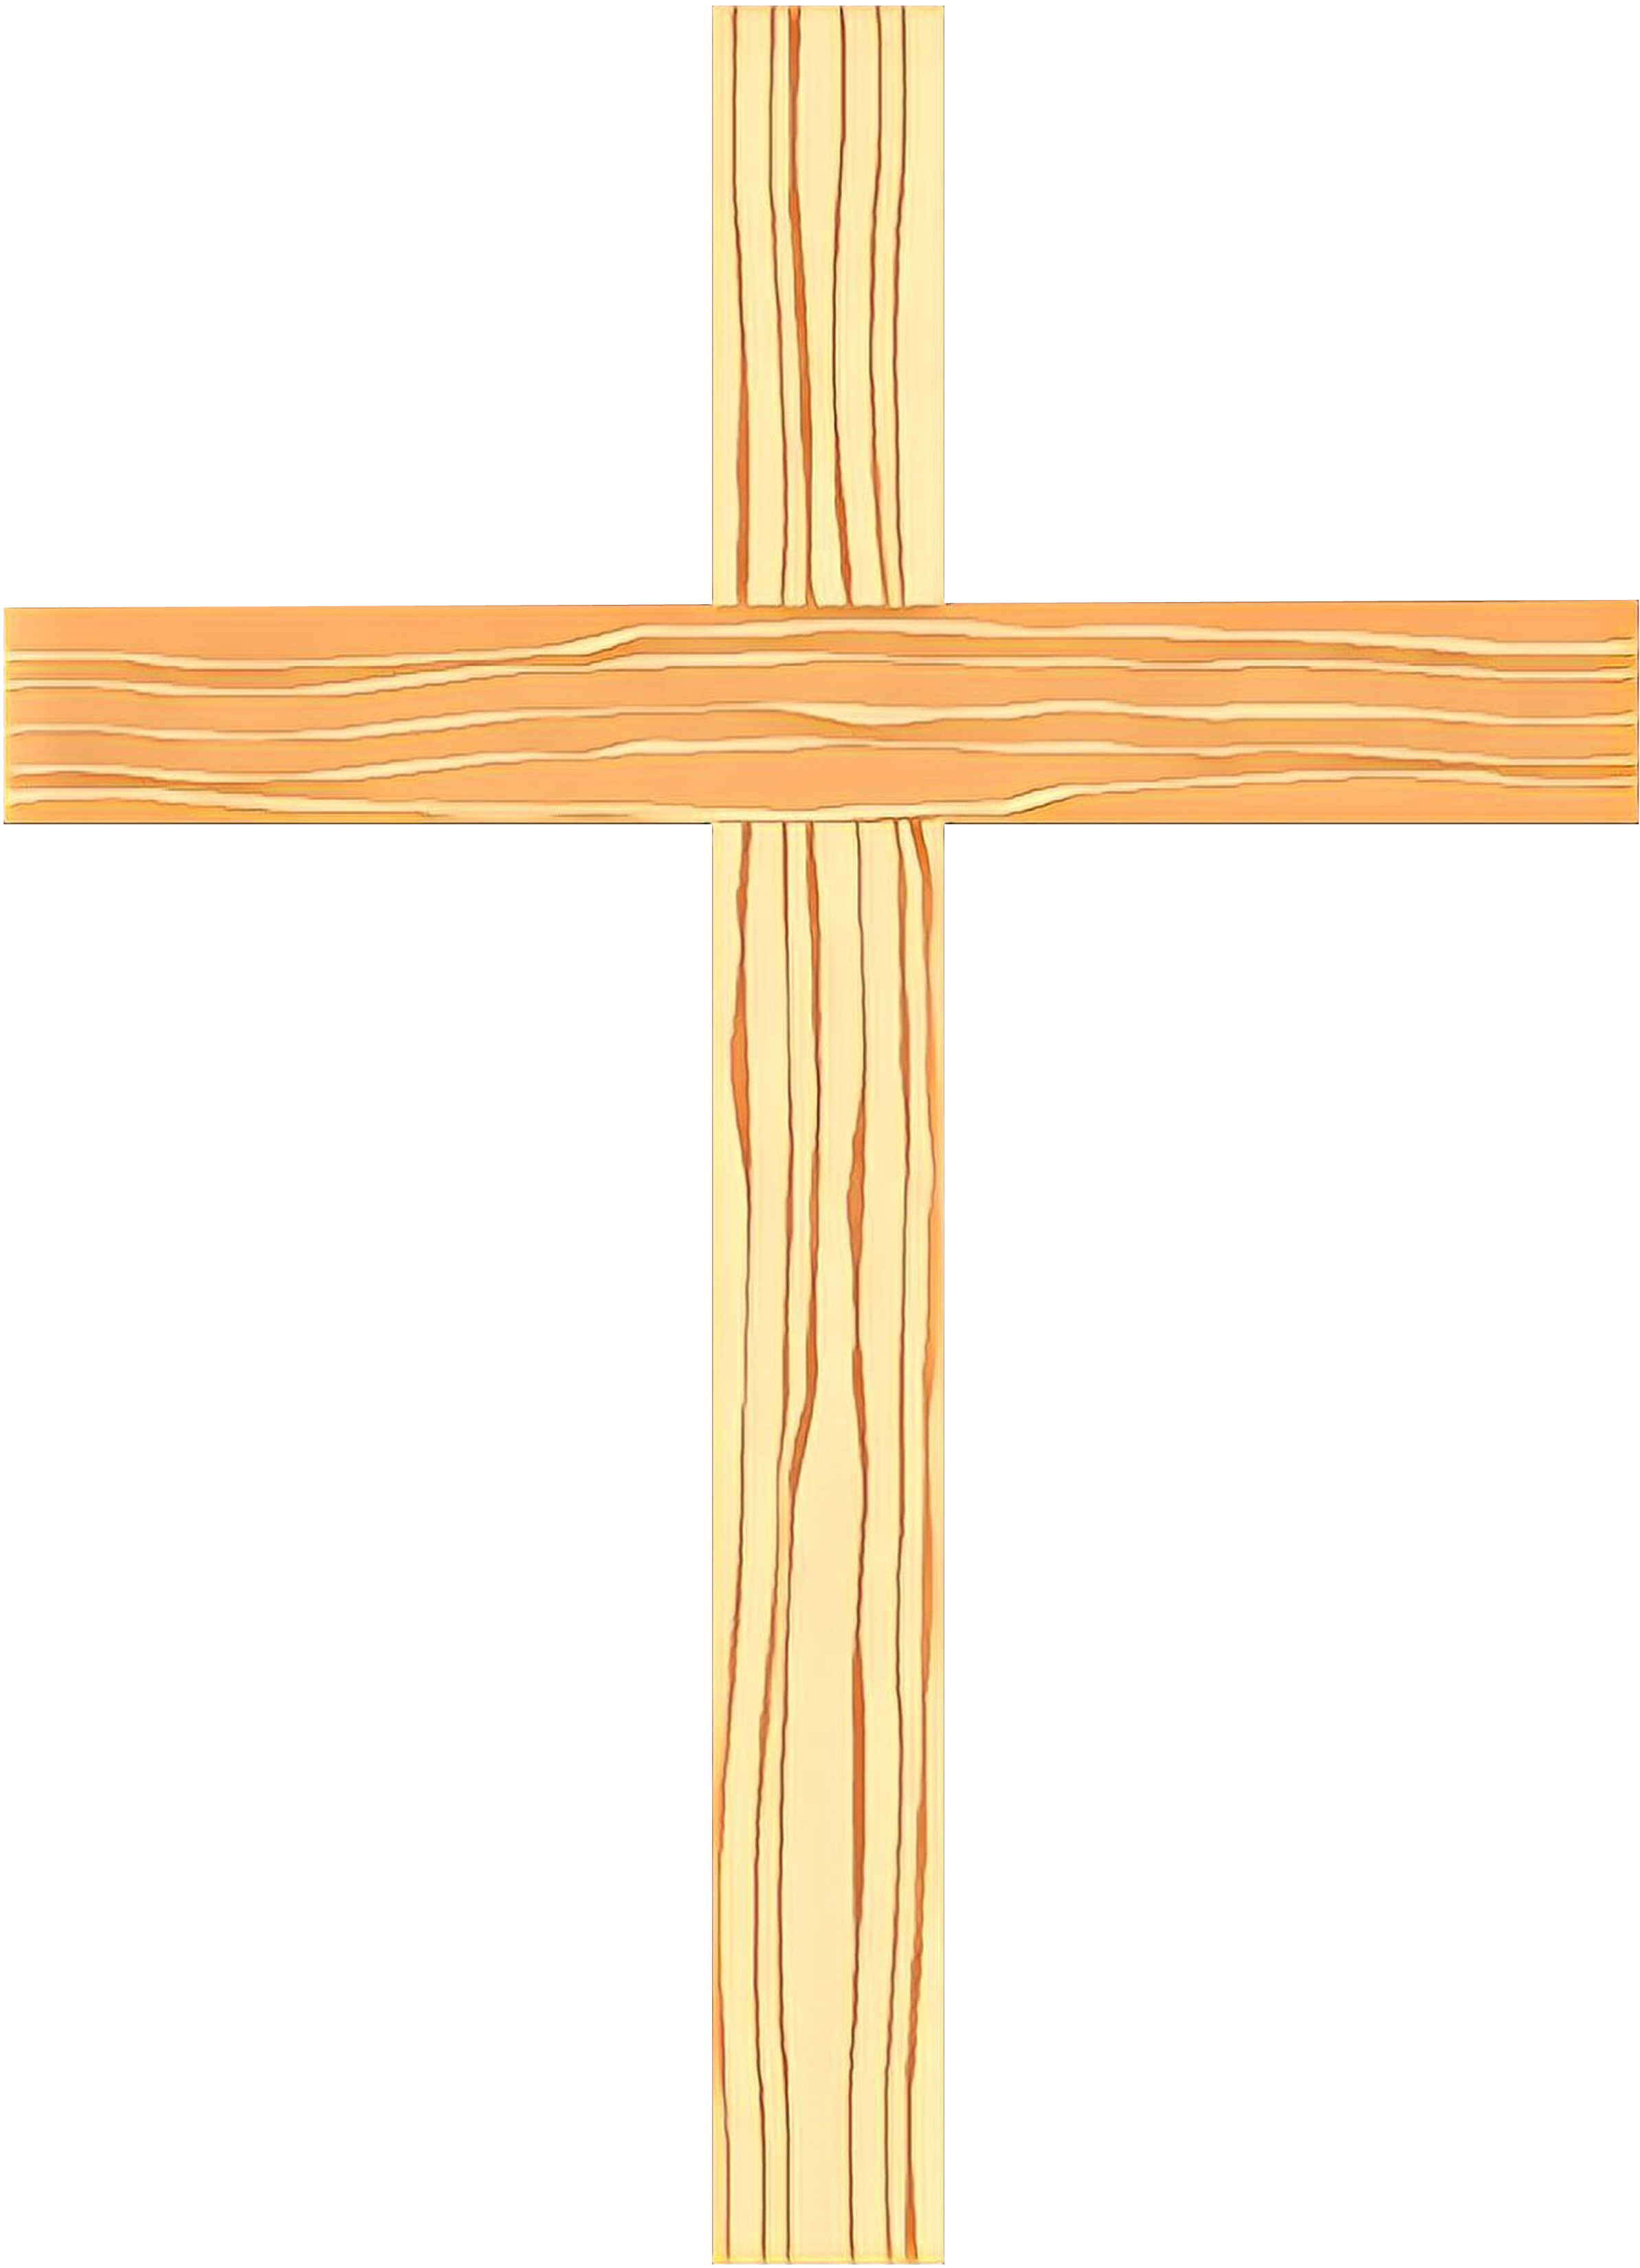 Wood cross clipart transparent royalty free library Crucifix /m/083vt Product design Wood Line - png download ... royalty free library